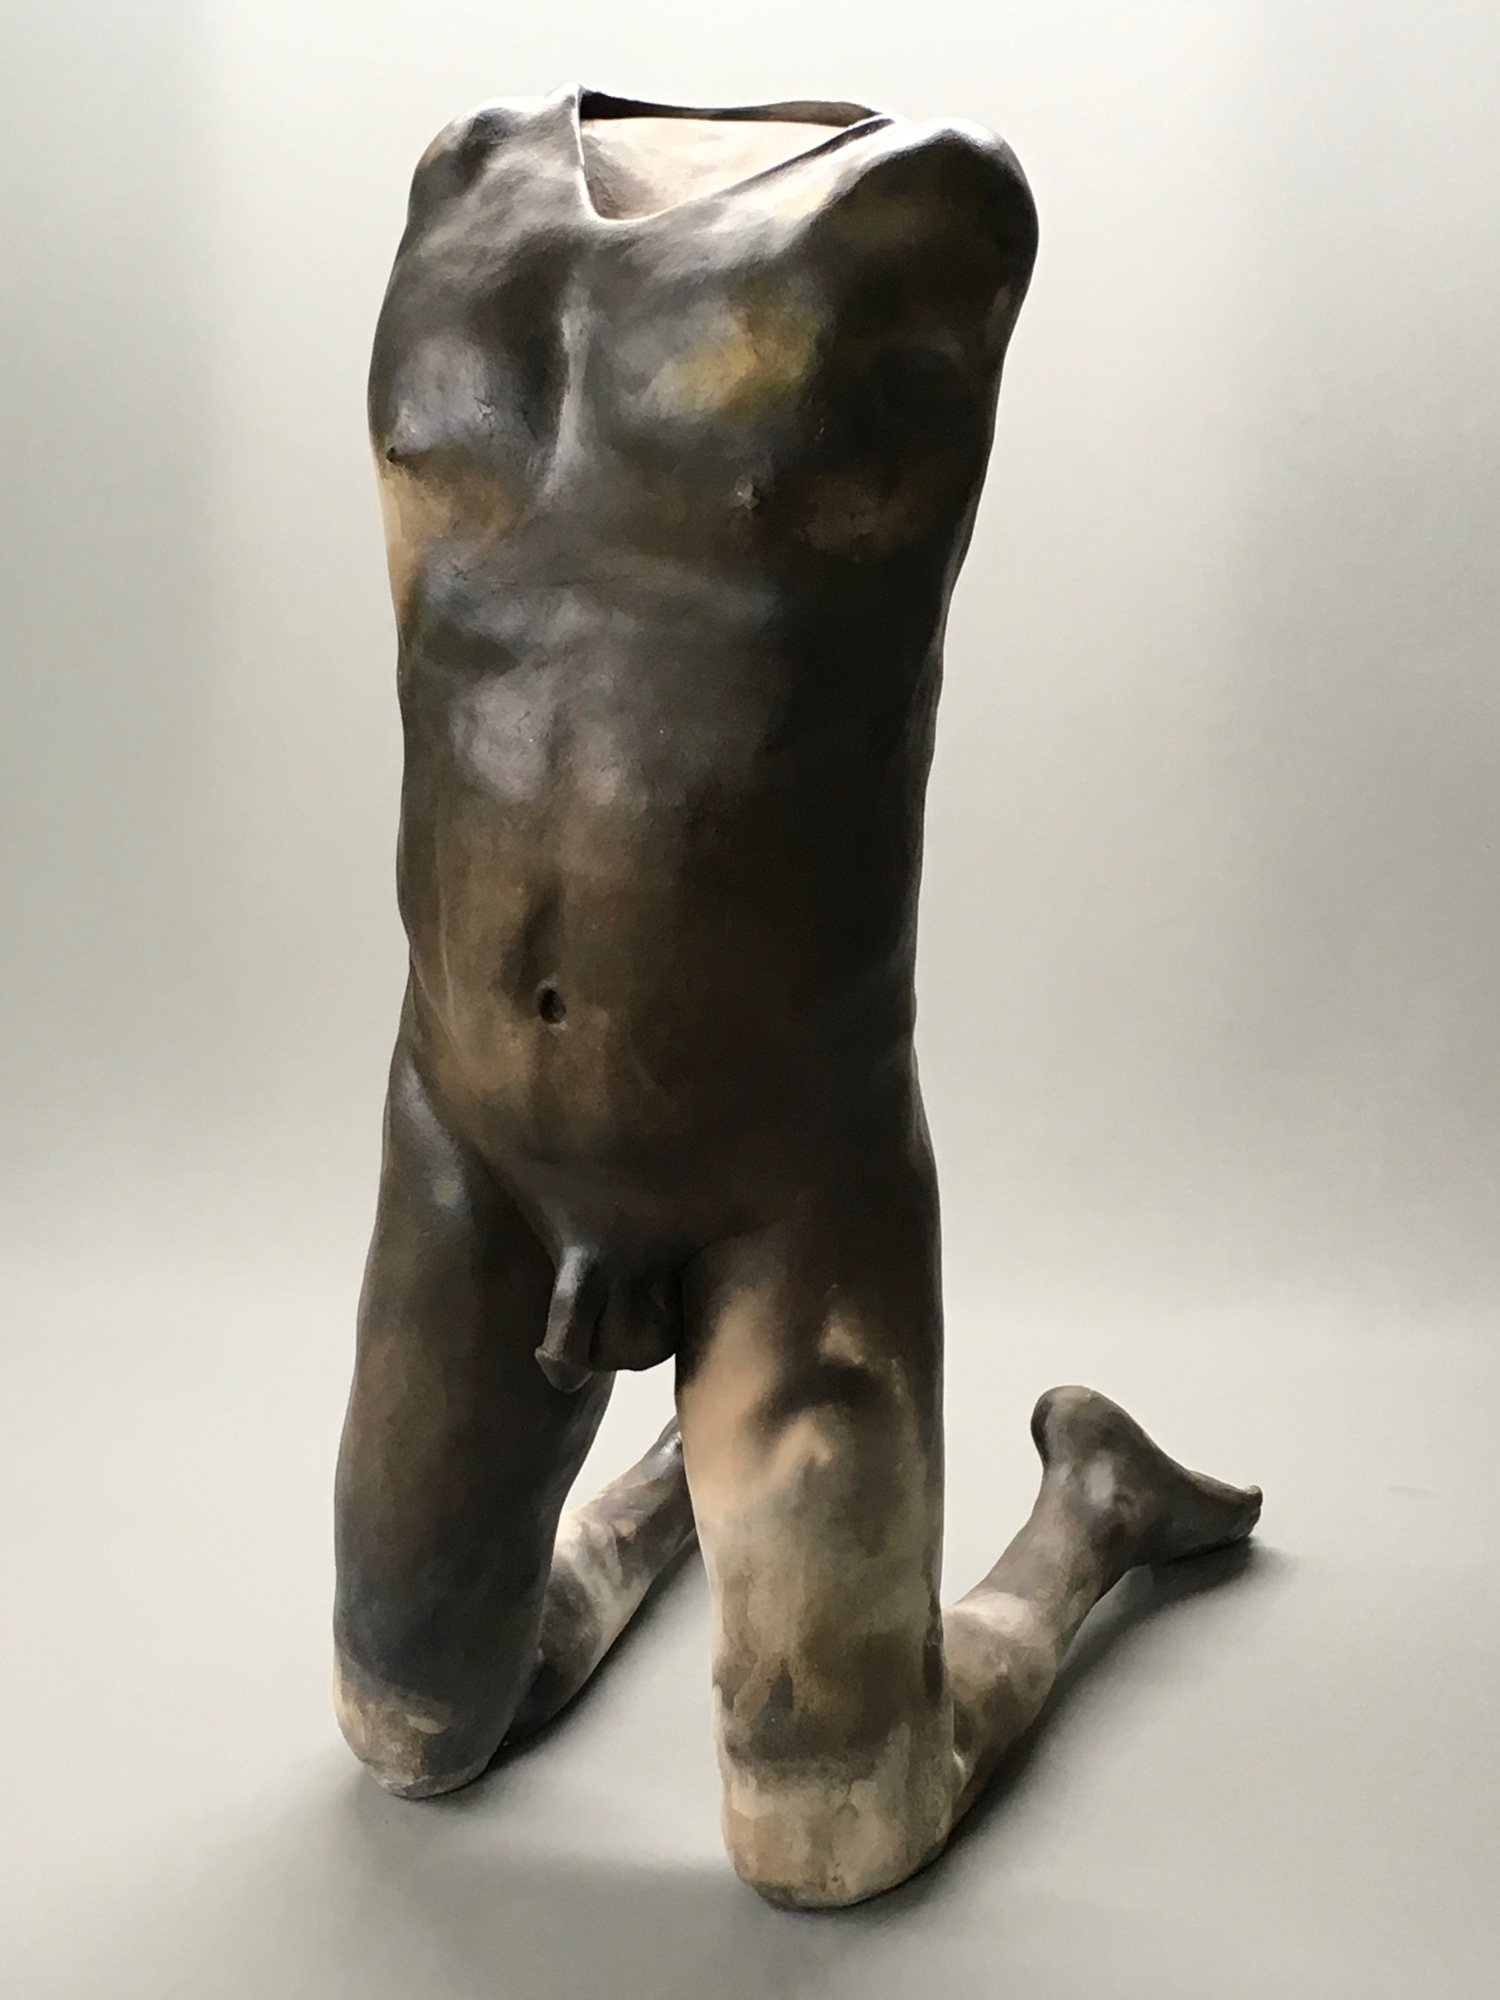 Pit-fired ceramic nude torso